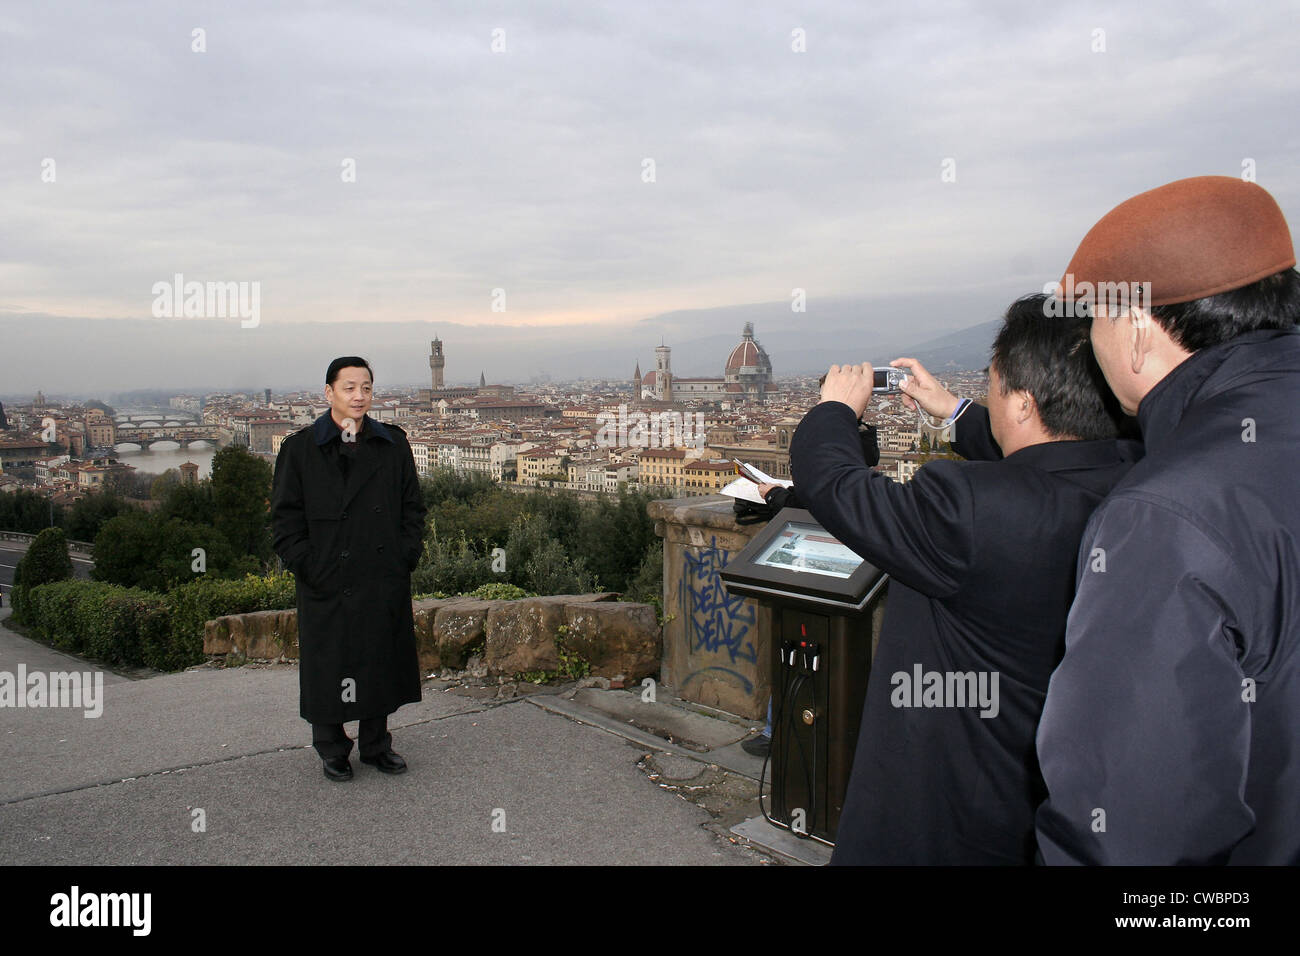 Florence, tourists take pictures at a viewing platform - Stock Image